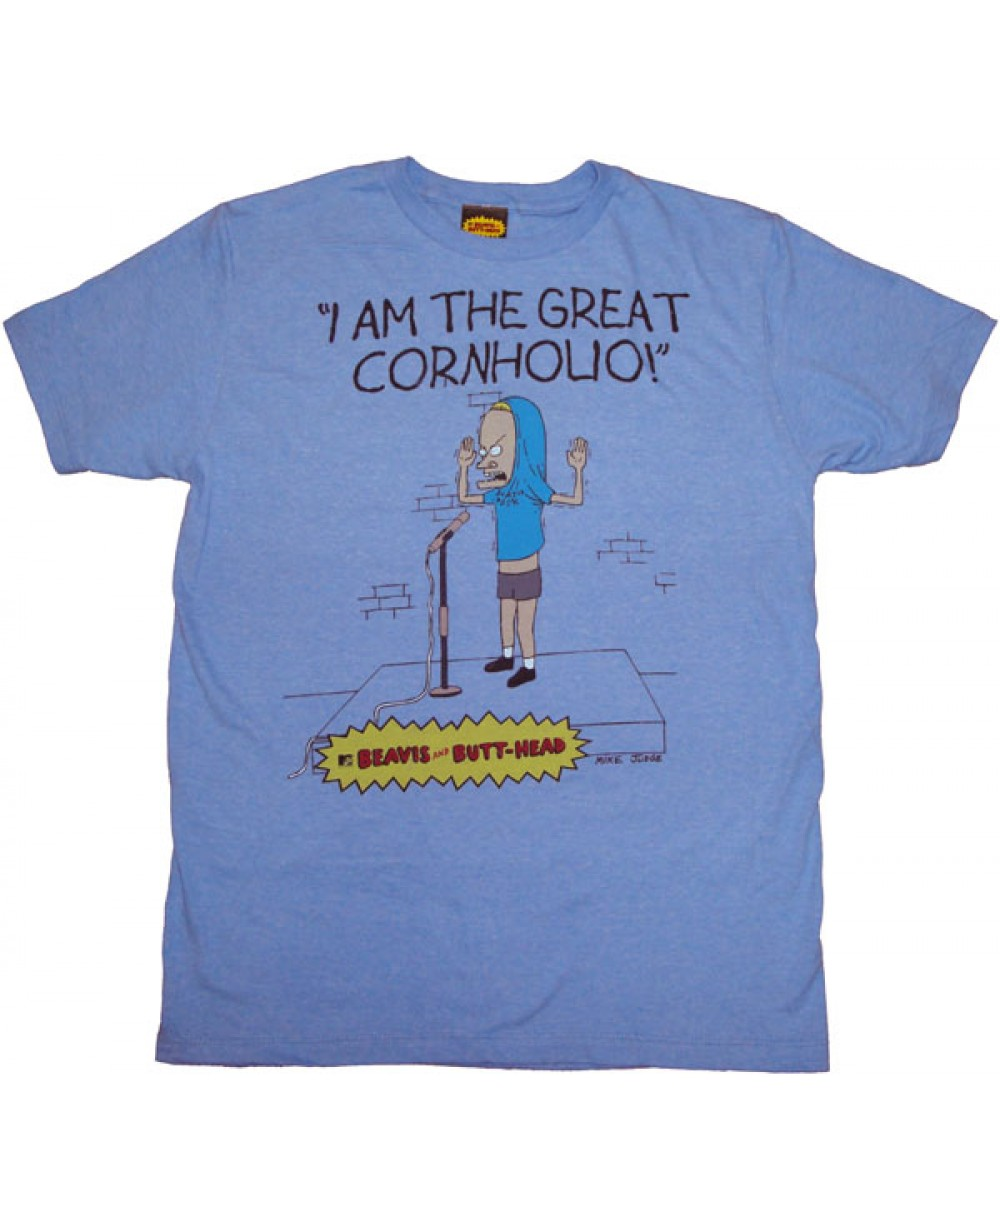 The great cornholio beavis and butthead t shirt The great t shirt